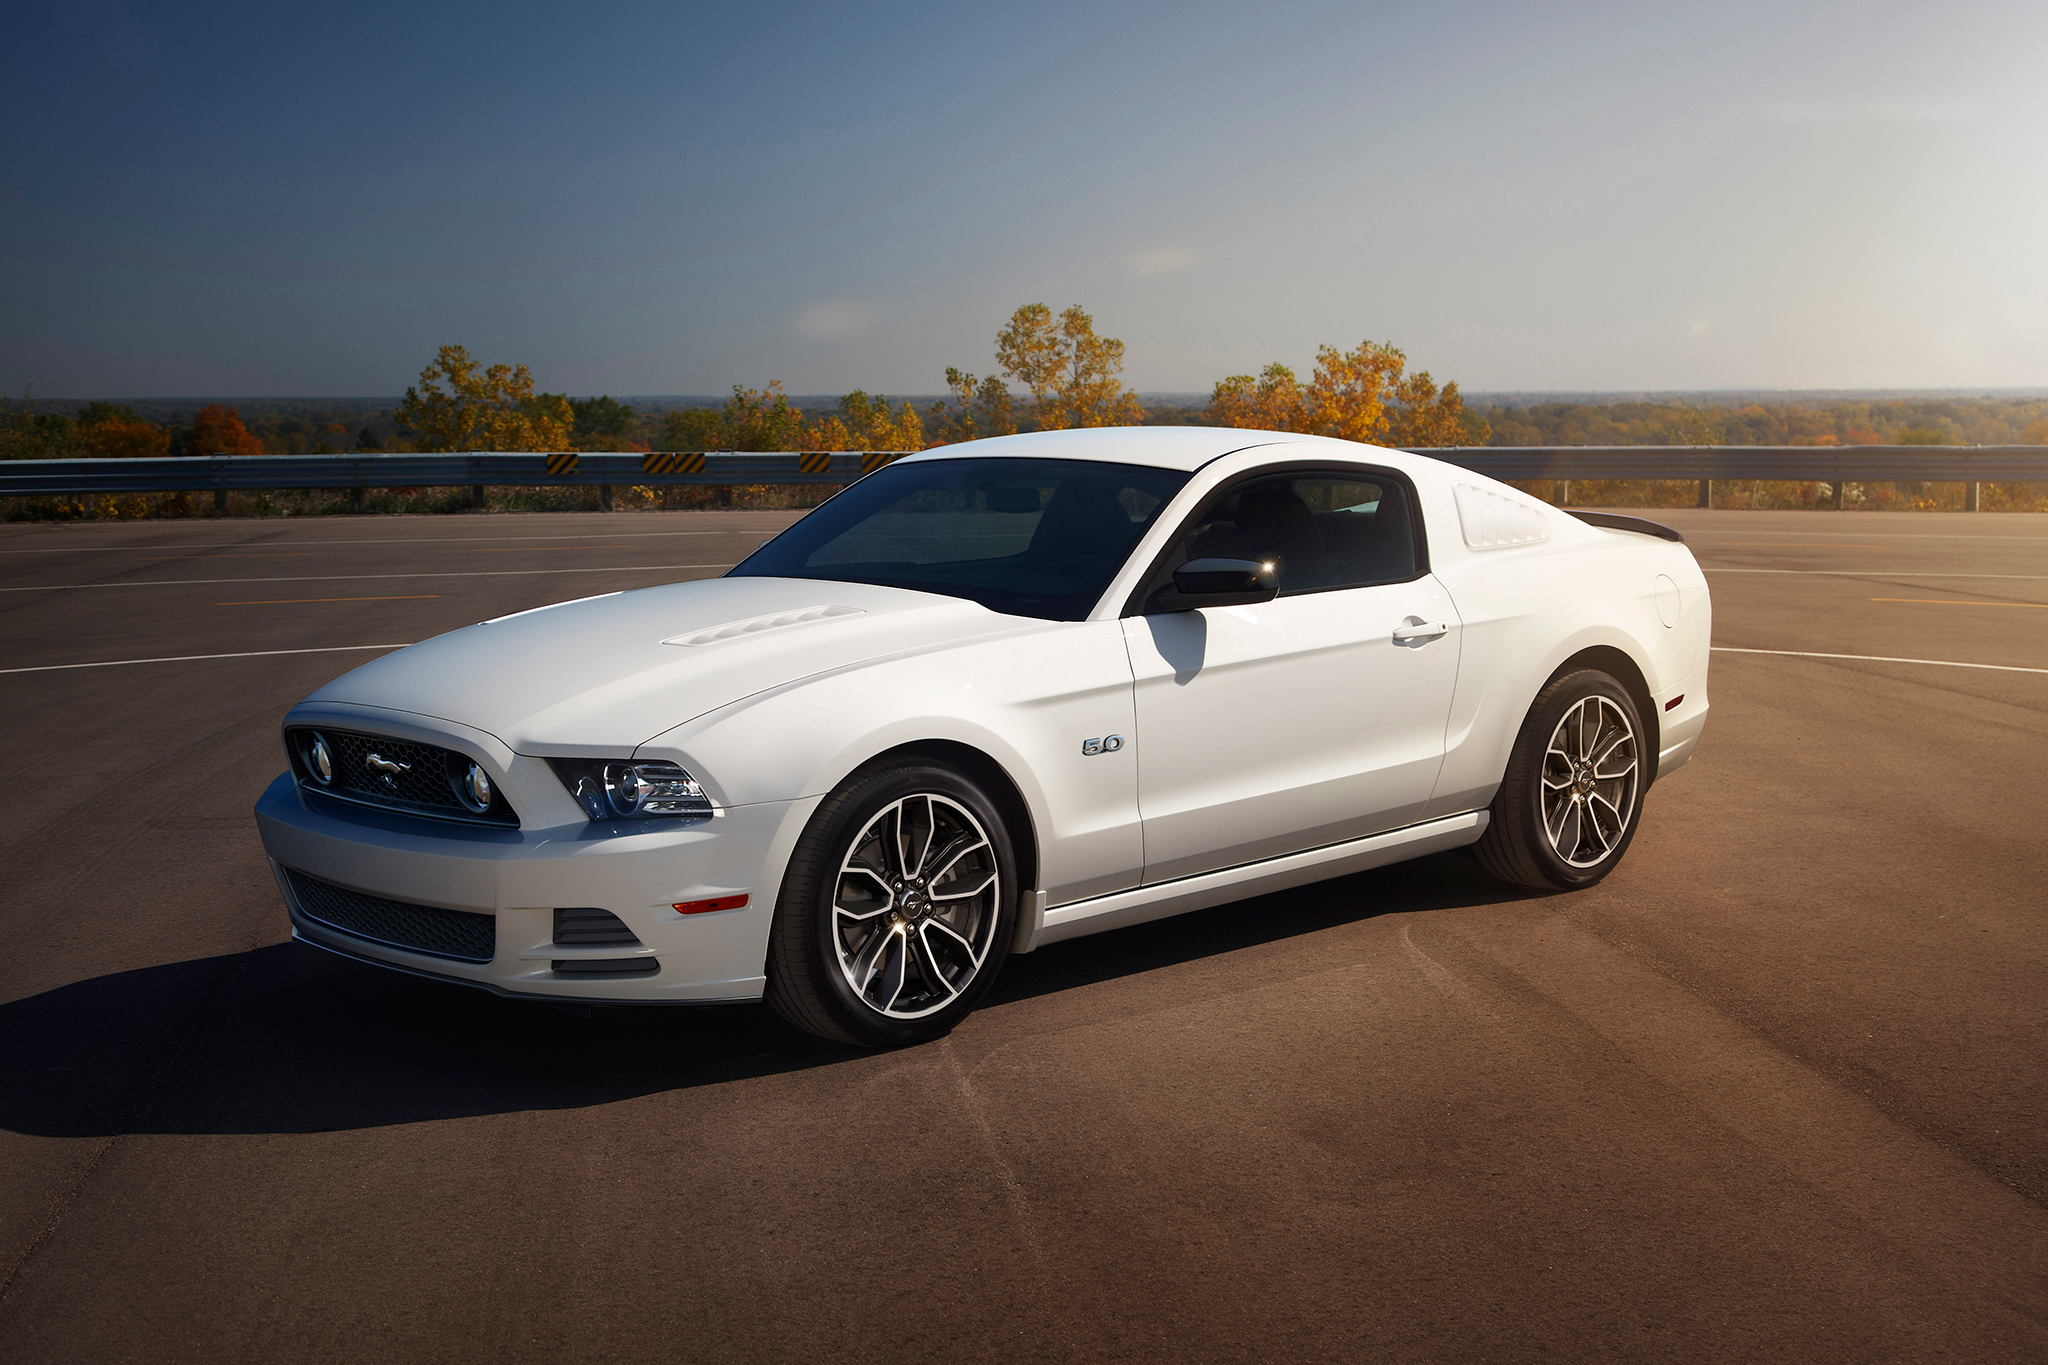 2014 Ford Mustang #13